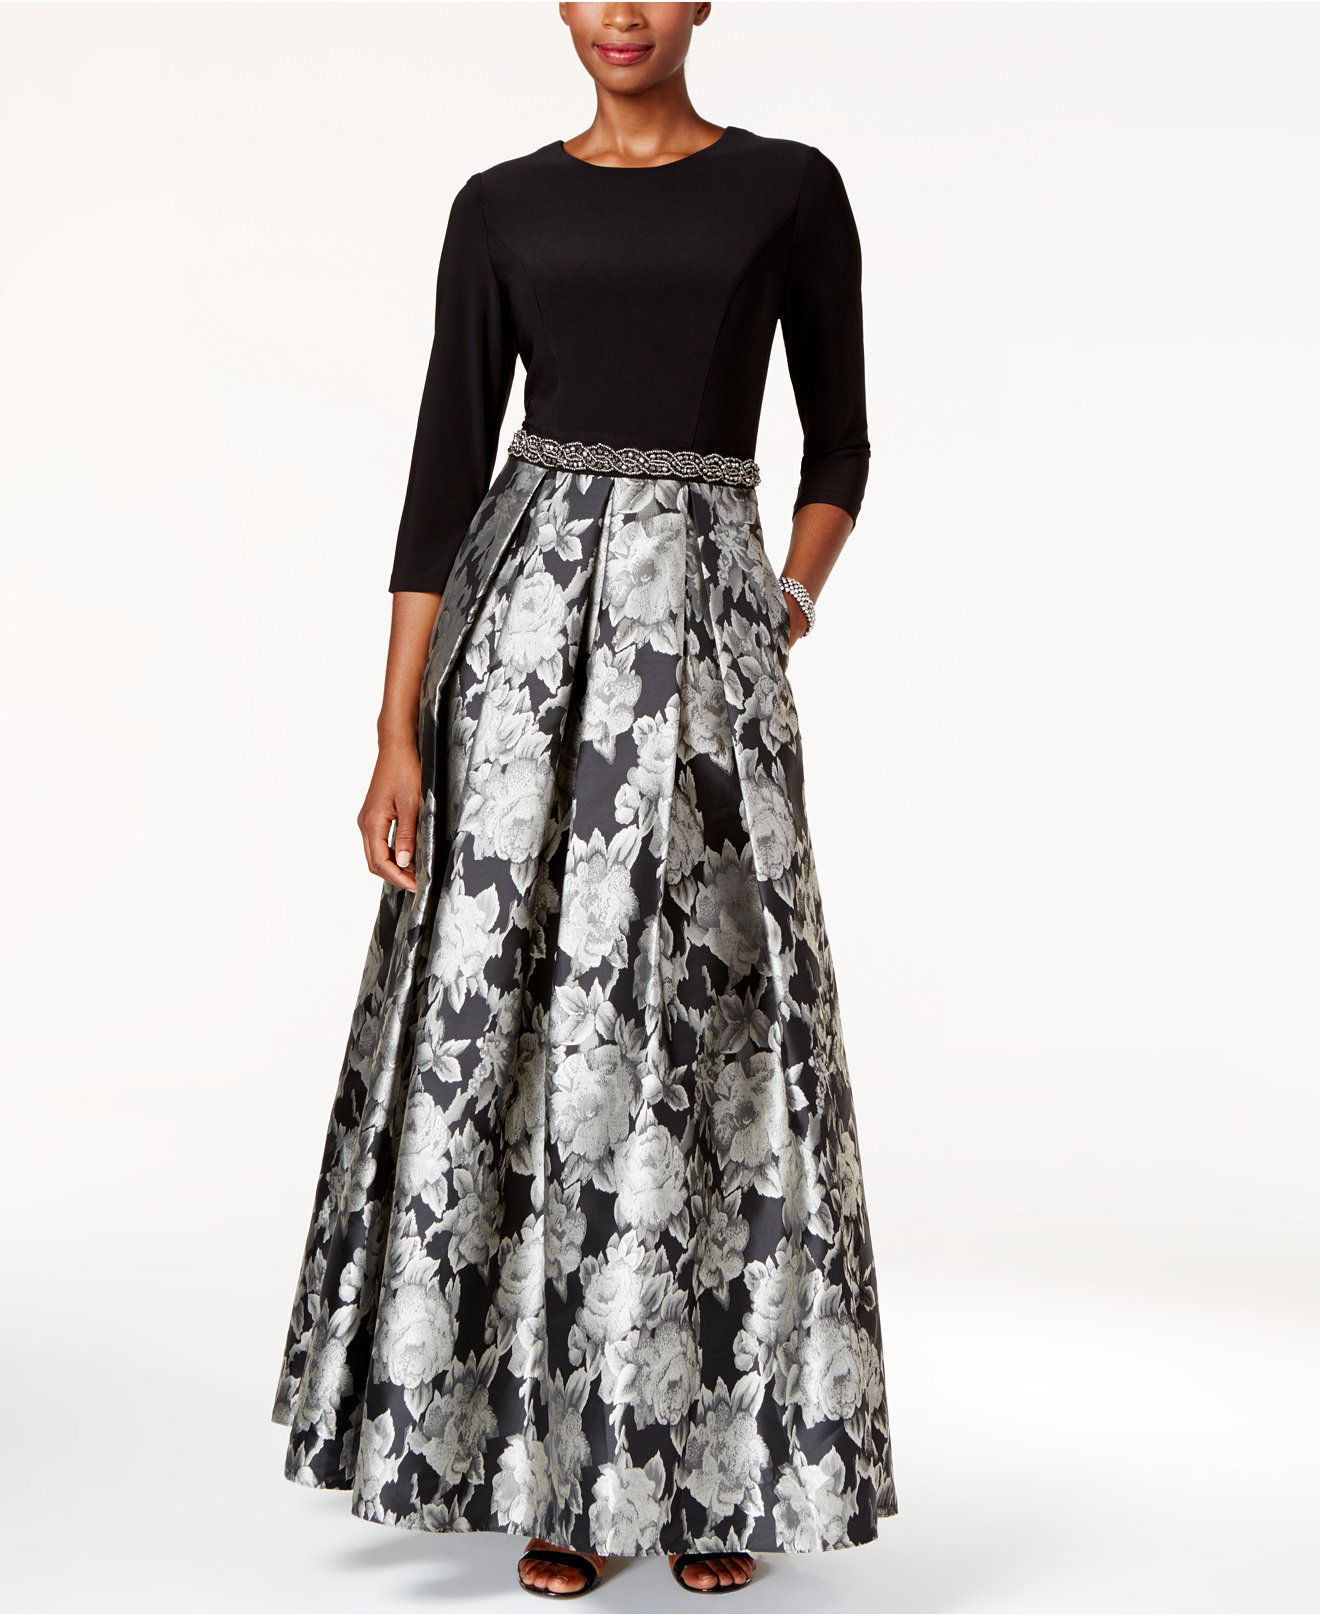 Alex Evenings Embellished Floral-Print Ball Gown - Dresses - Women ...